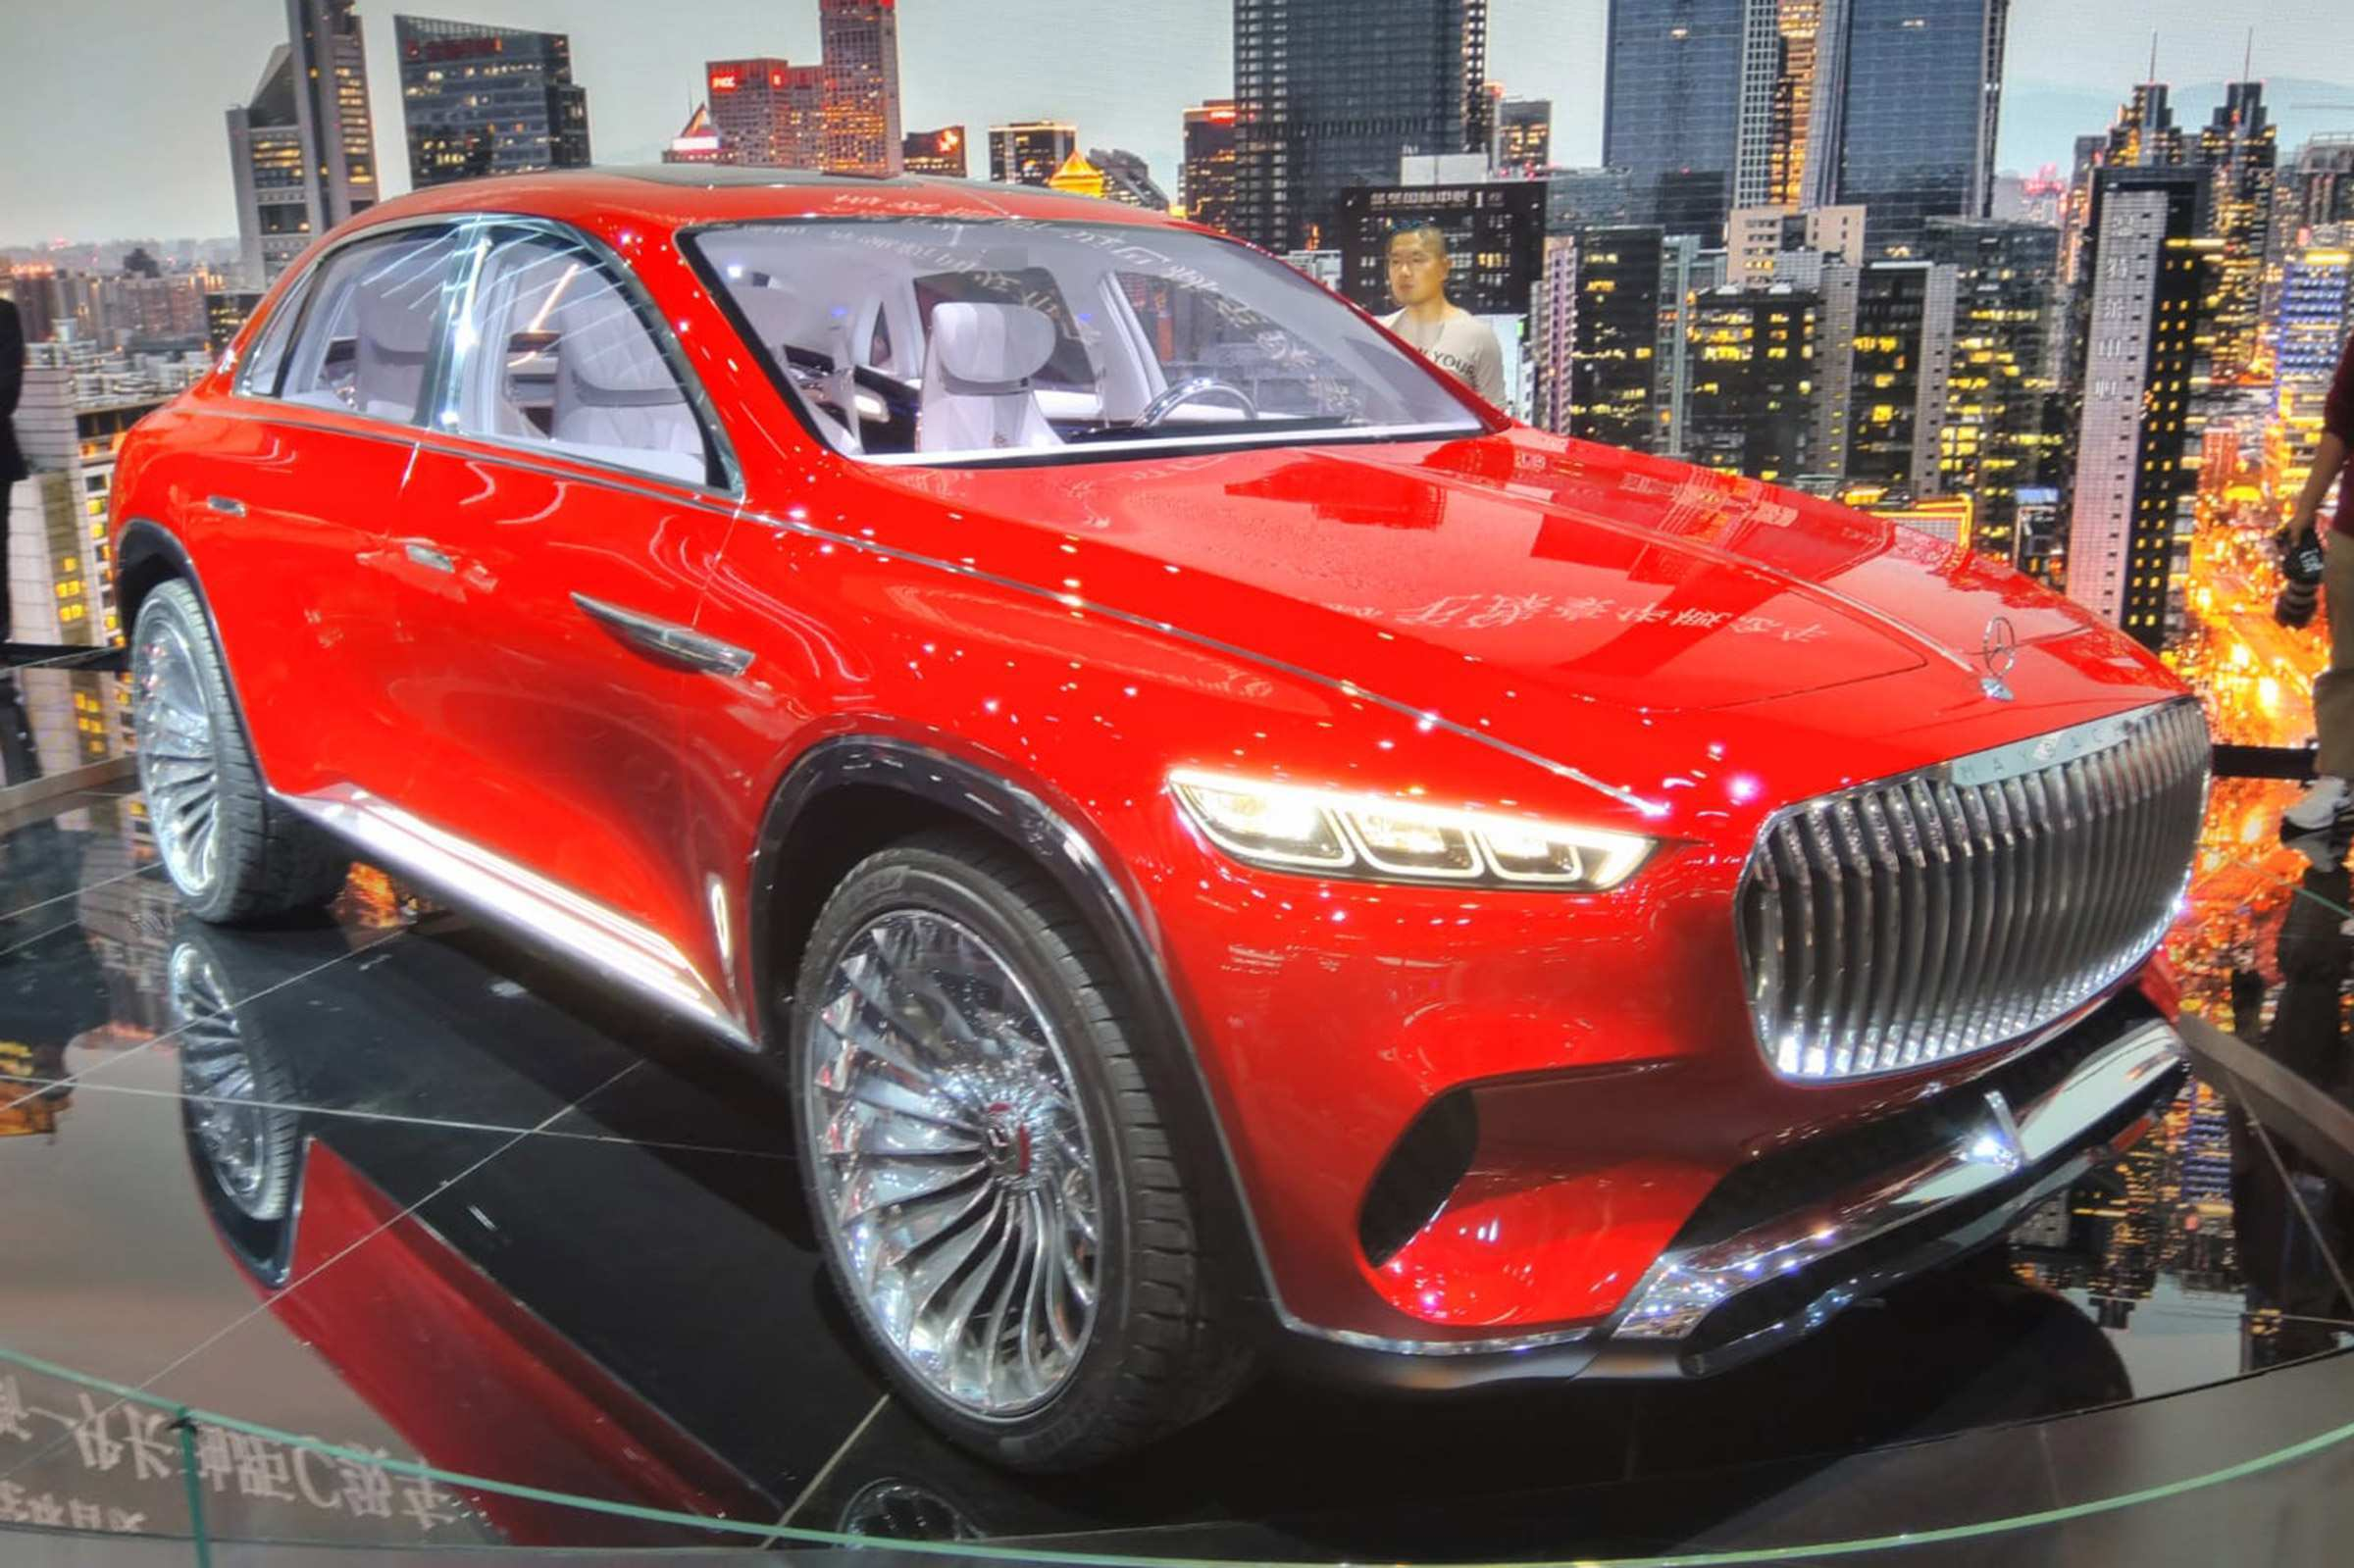 47 Great Mercedes Maybach Suv 2019 Spy Shoot for Mercedes Maybach Suv 2019